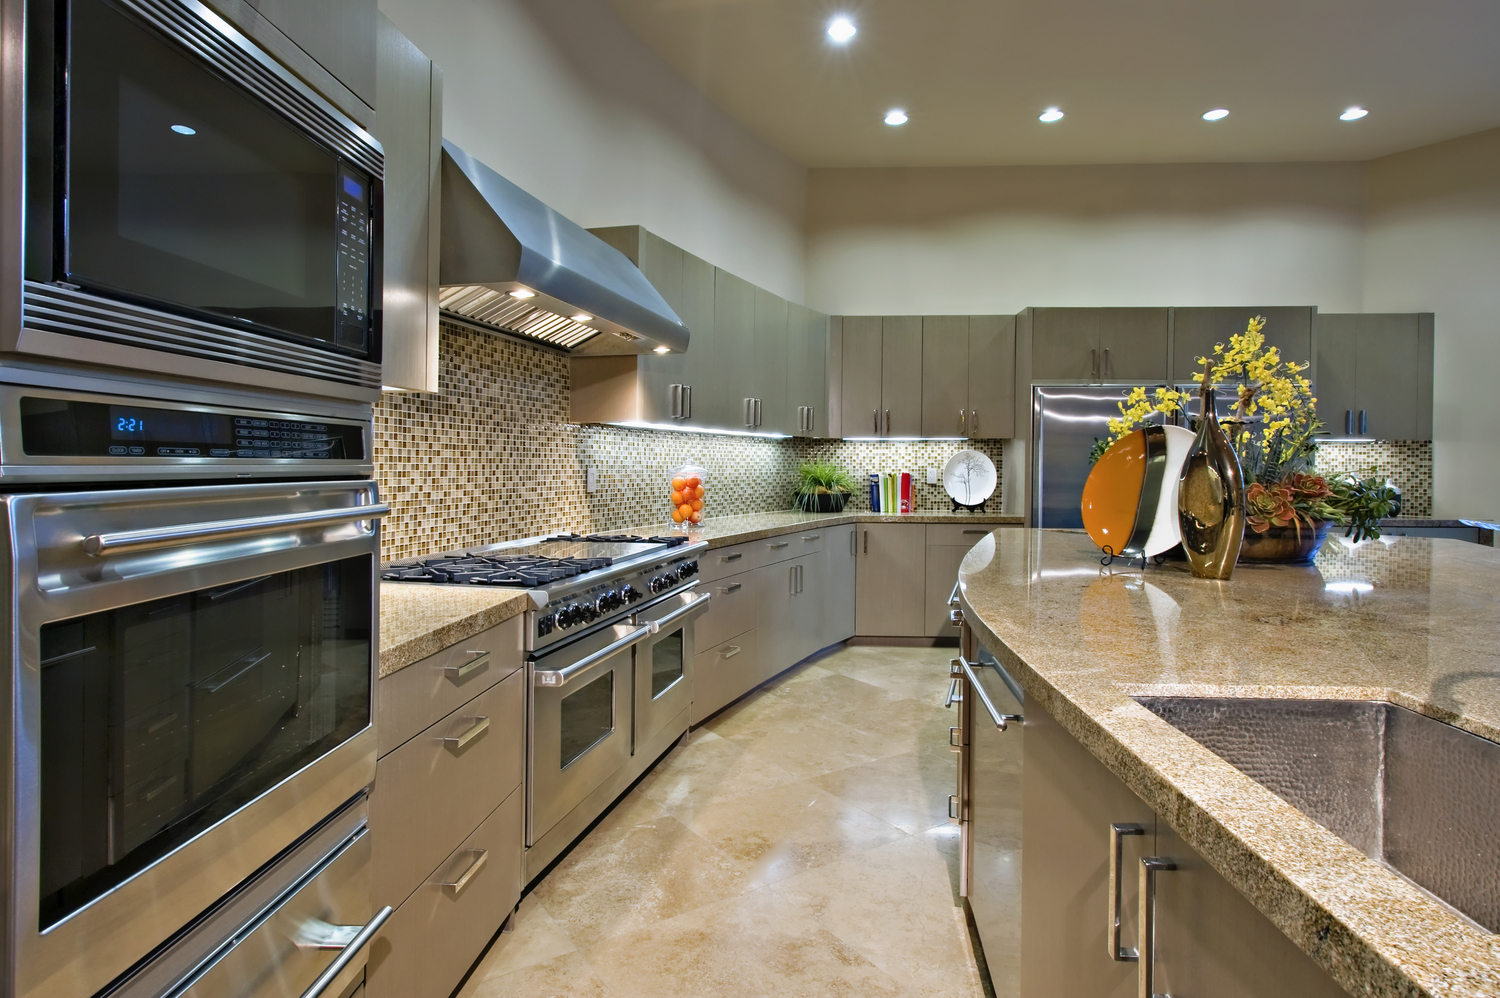 Where to use LED Rotatable Downlights